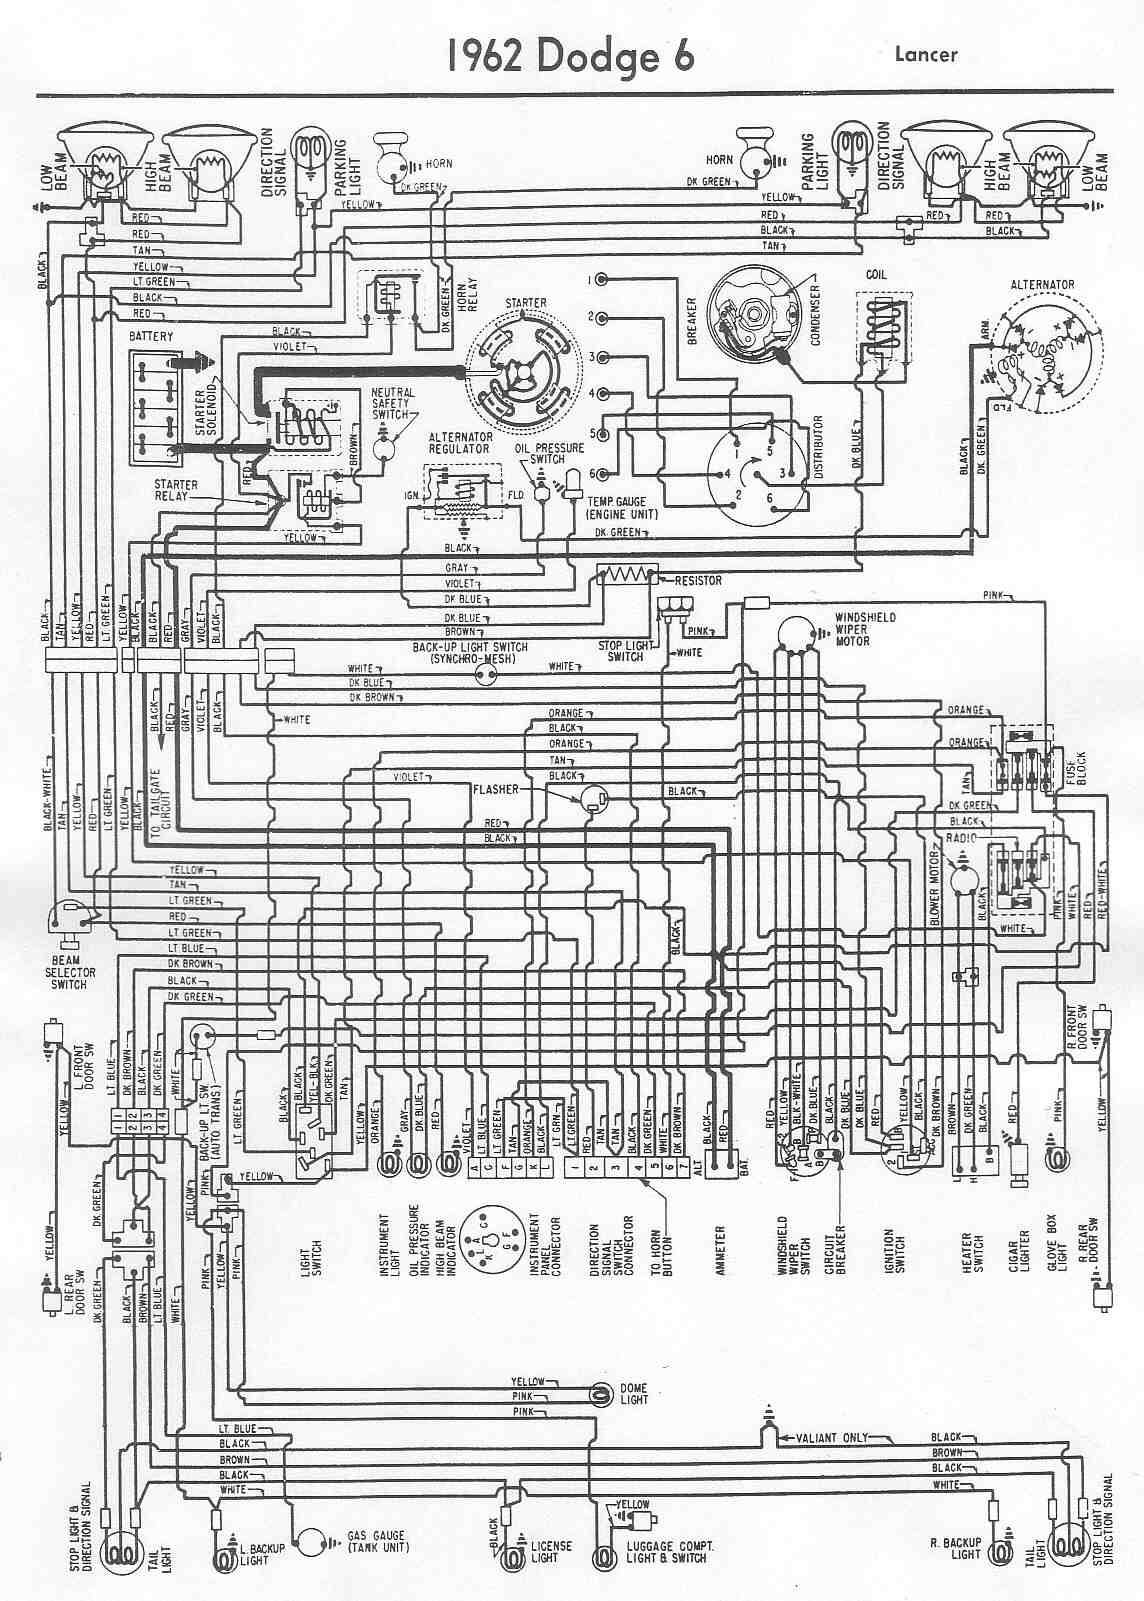 74 Plymouth Duster Wiring Diagram Schematics Diagrams 1973 1974 Harness Schematic Rh Ogmconsulting Co 1970 Barracuda